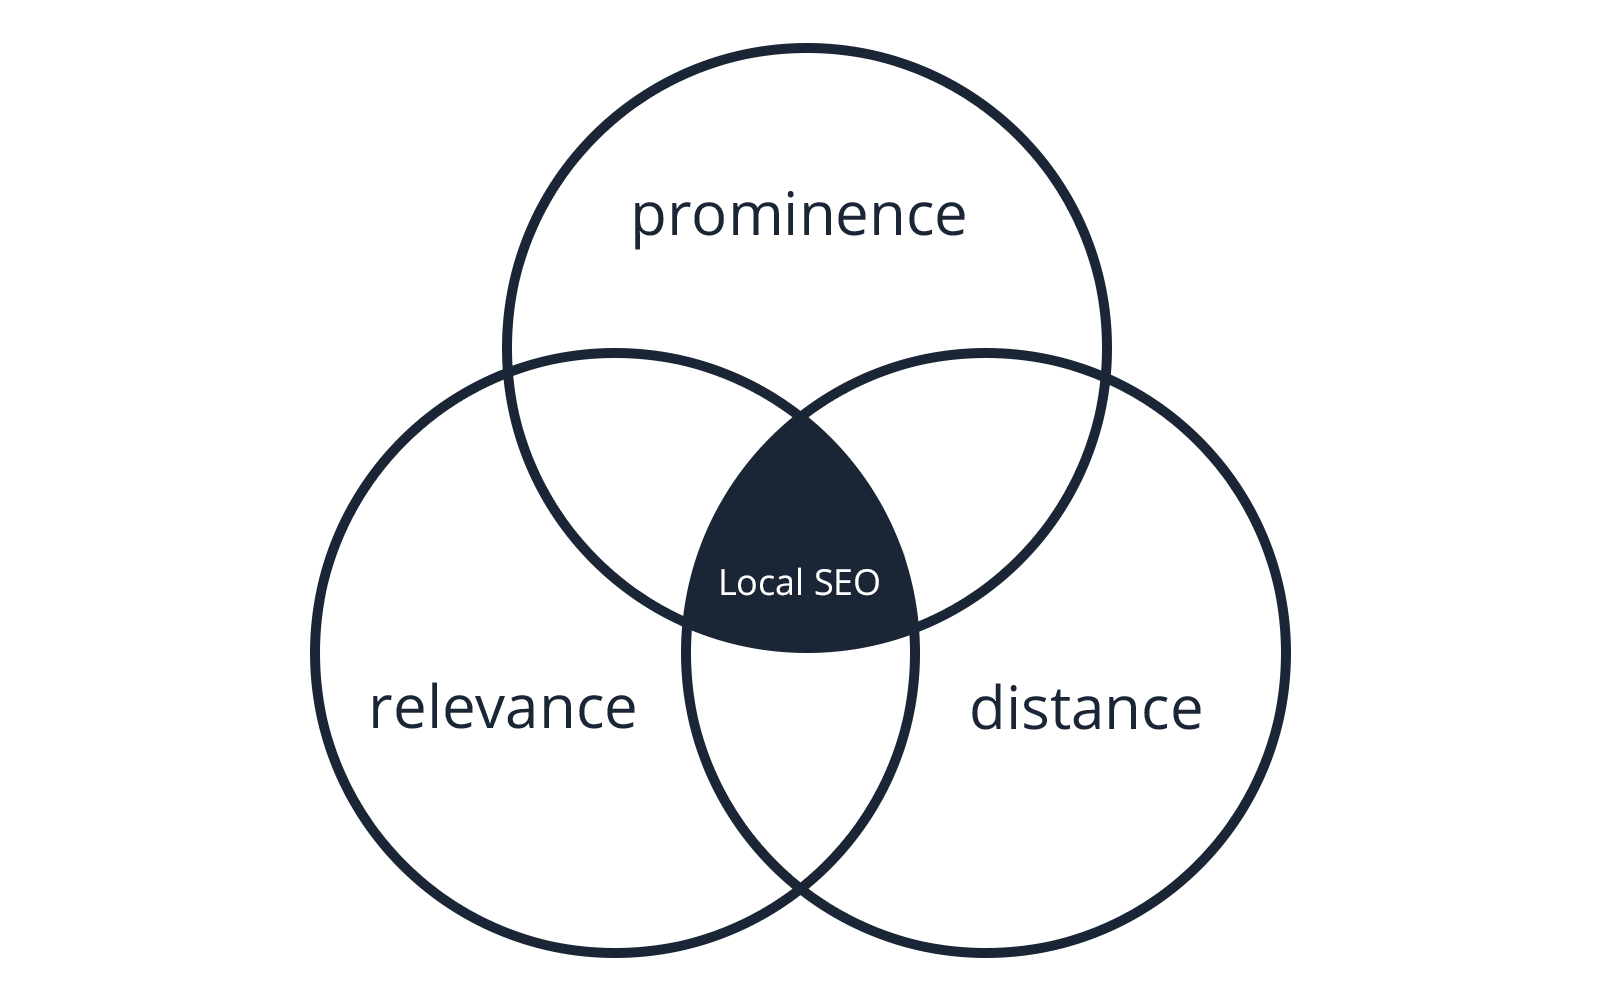 Local SEO Diagram